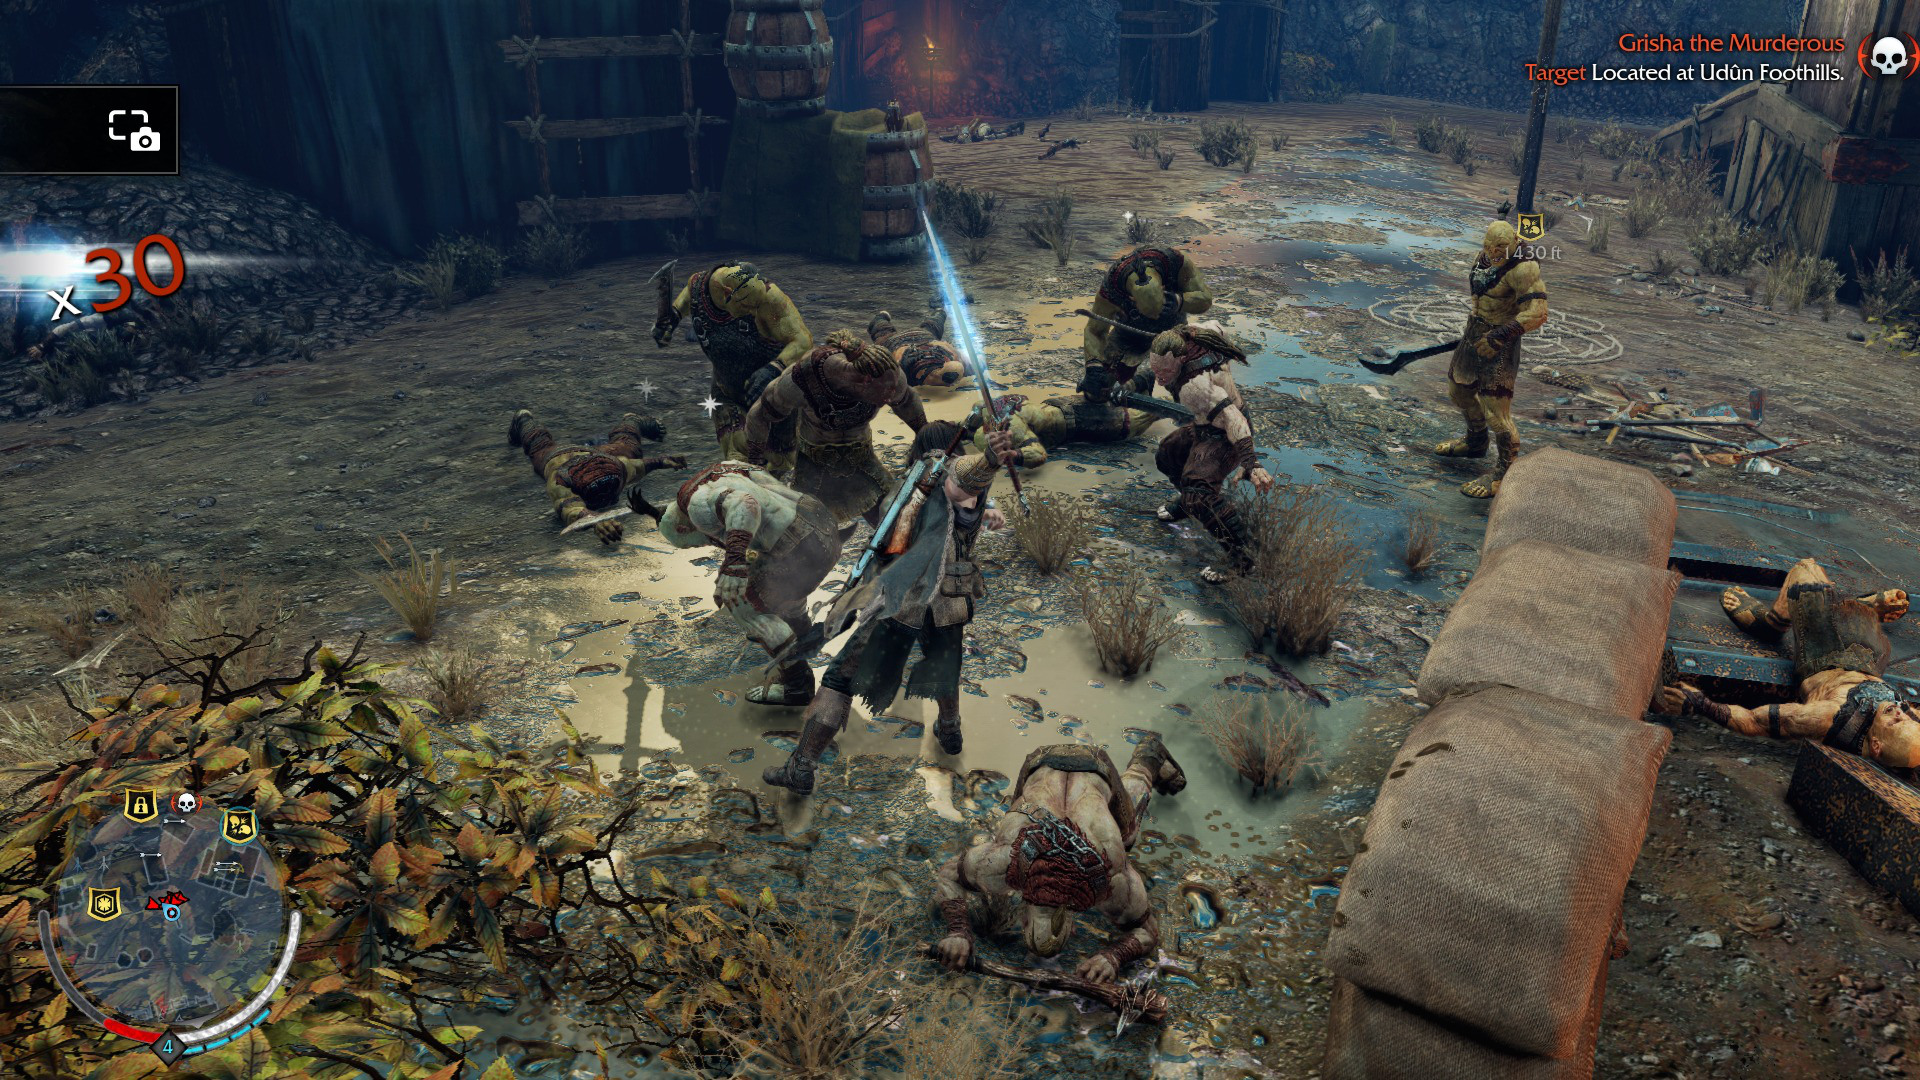 Middle-earth: Shadow of Mordor RPG